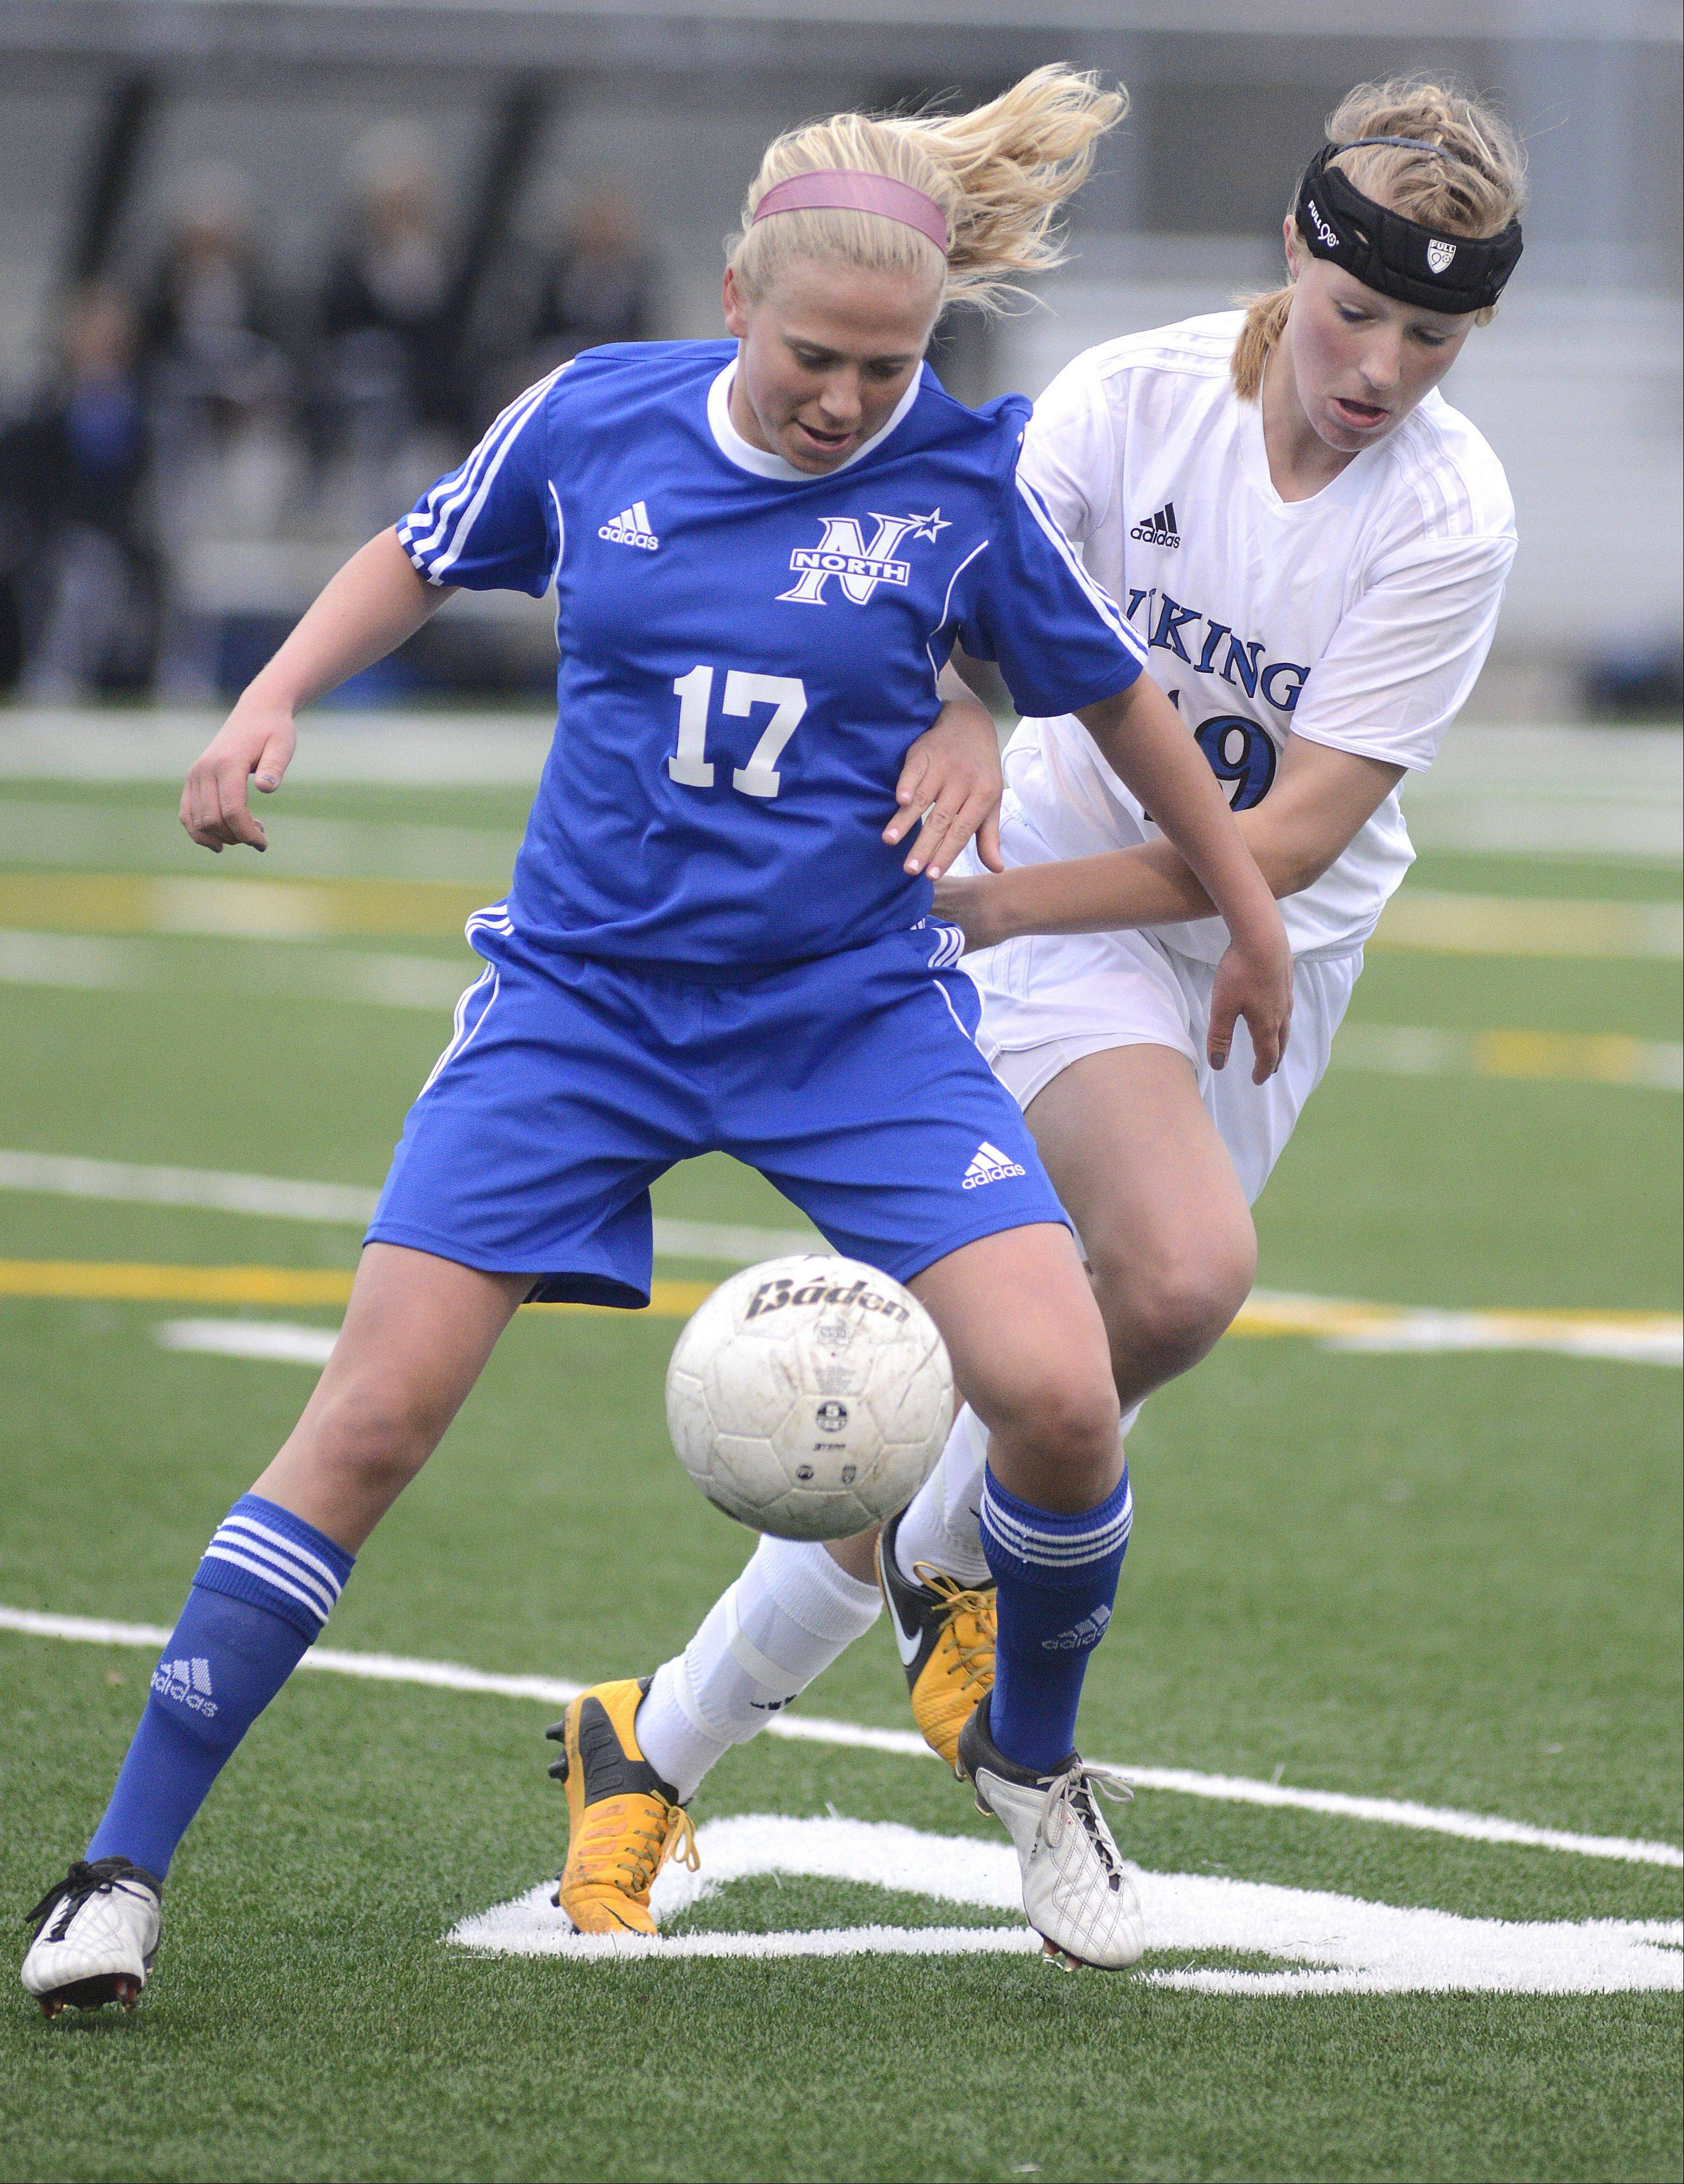 St. Charles North�s Kelly Manski and Geneva�s Megan Kozlow battle for the ball in the first half on Tuesday, April 9.